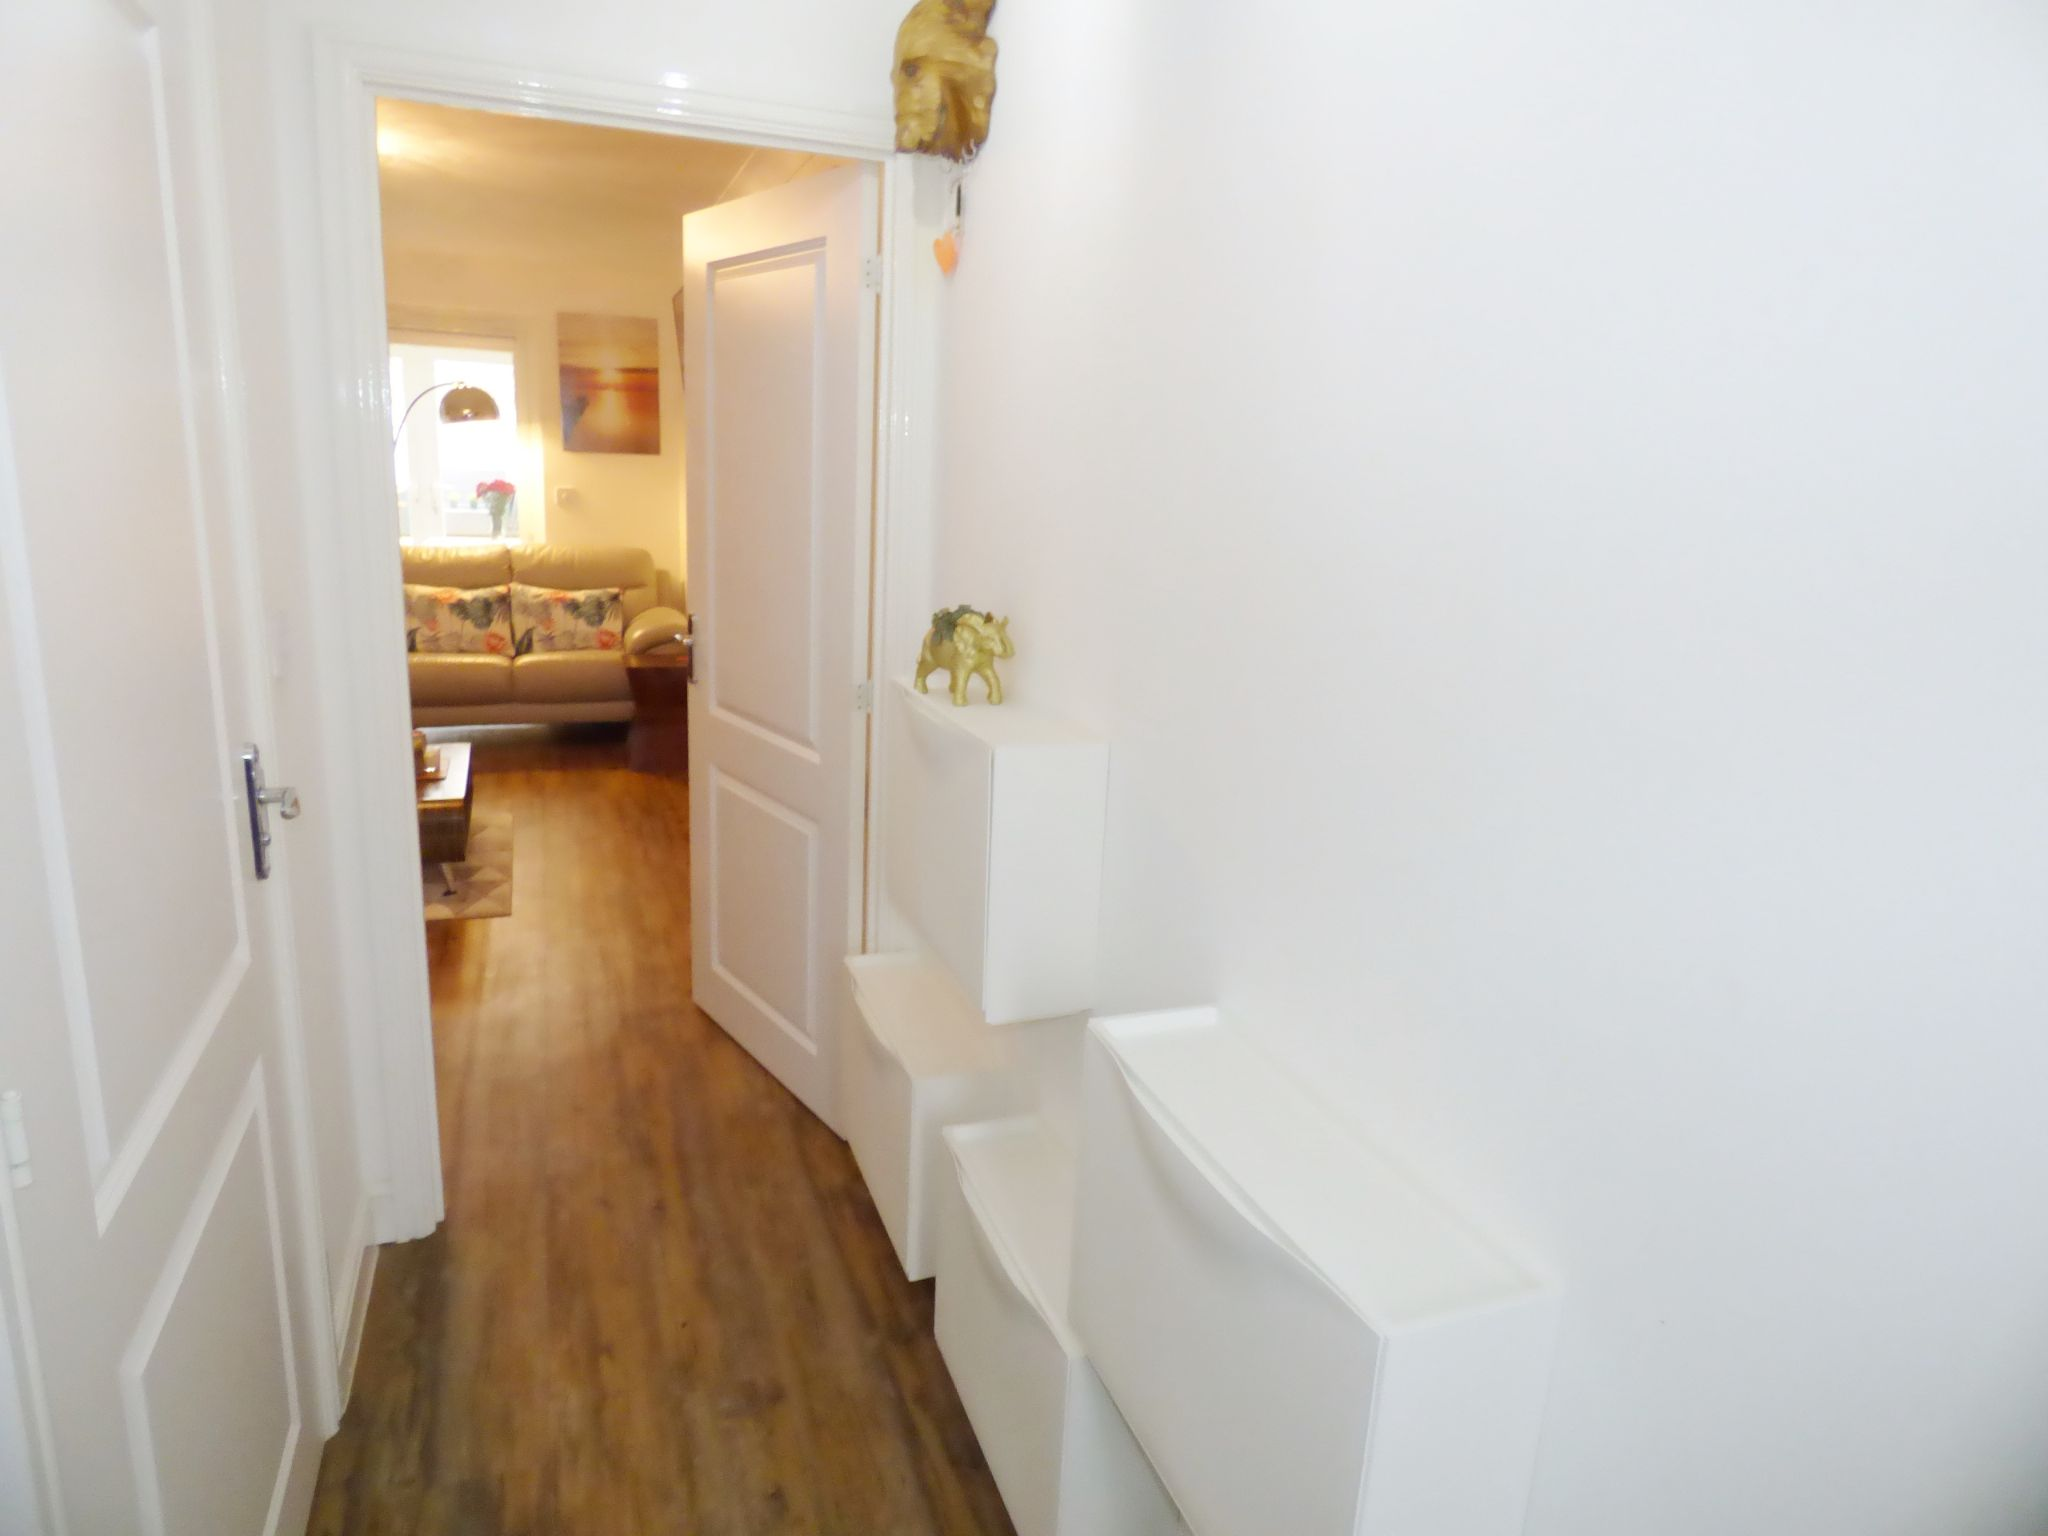 2 Bedroom End Terraced House For Sale - Hallway